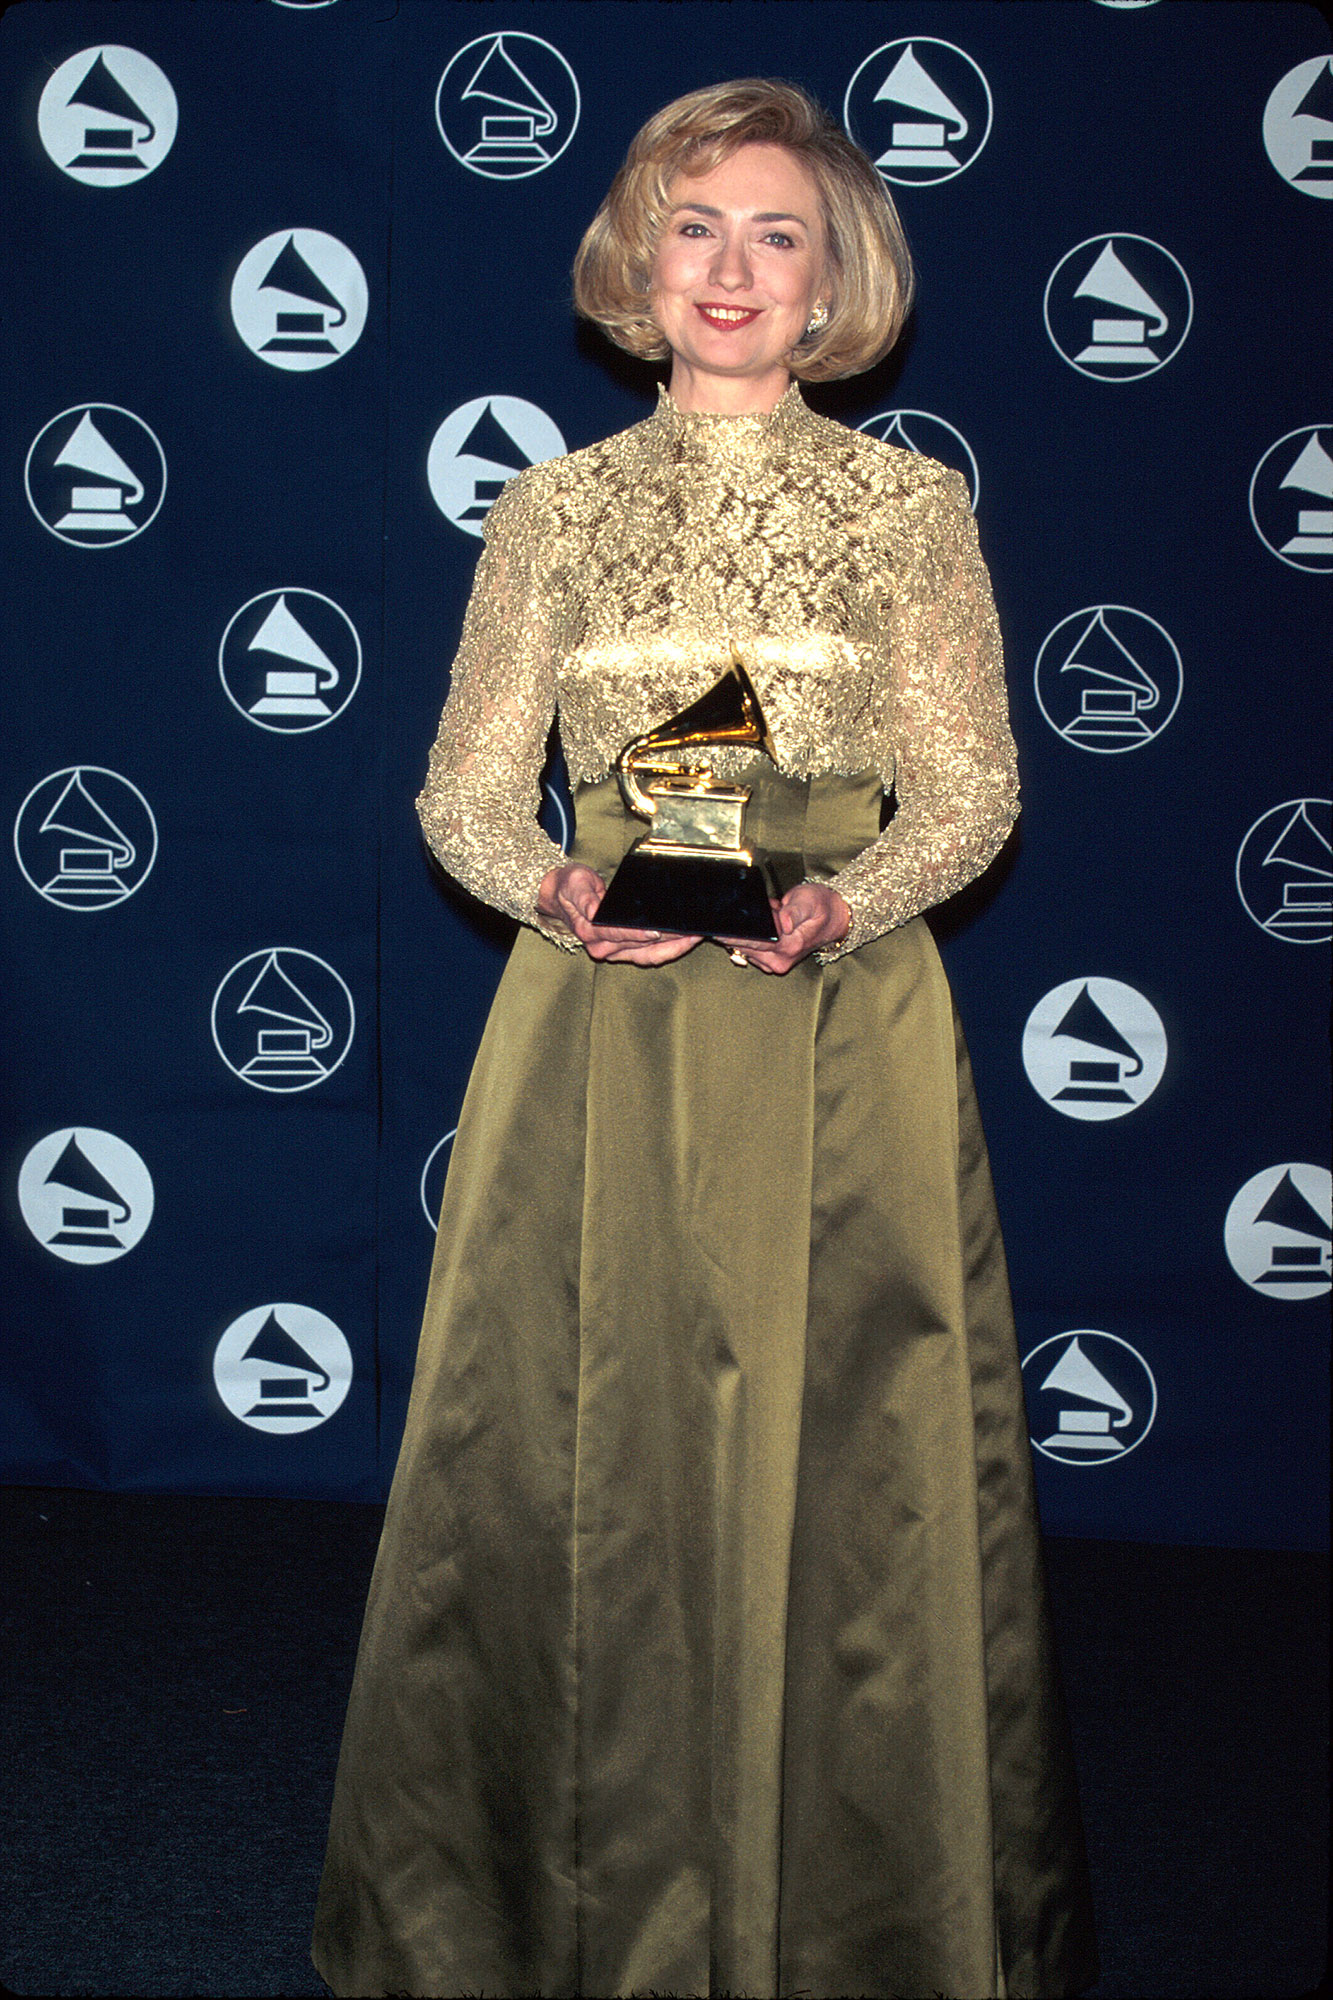 Stars You Wouldn't Expect to Be Grammy Nominees or Winners - The former secretary of state won Best Spoken Word or Non-Musical Album for It Takes a Village in 1997. She was nominated again in 2004 for her audiobook Living History .